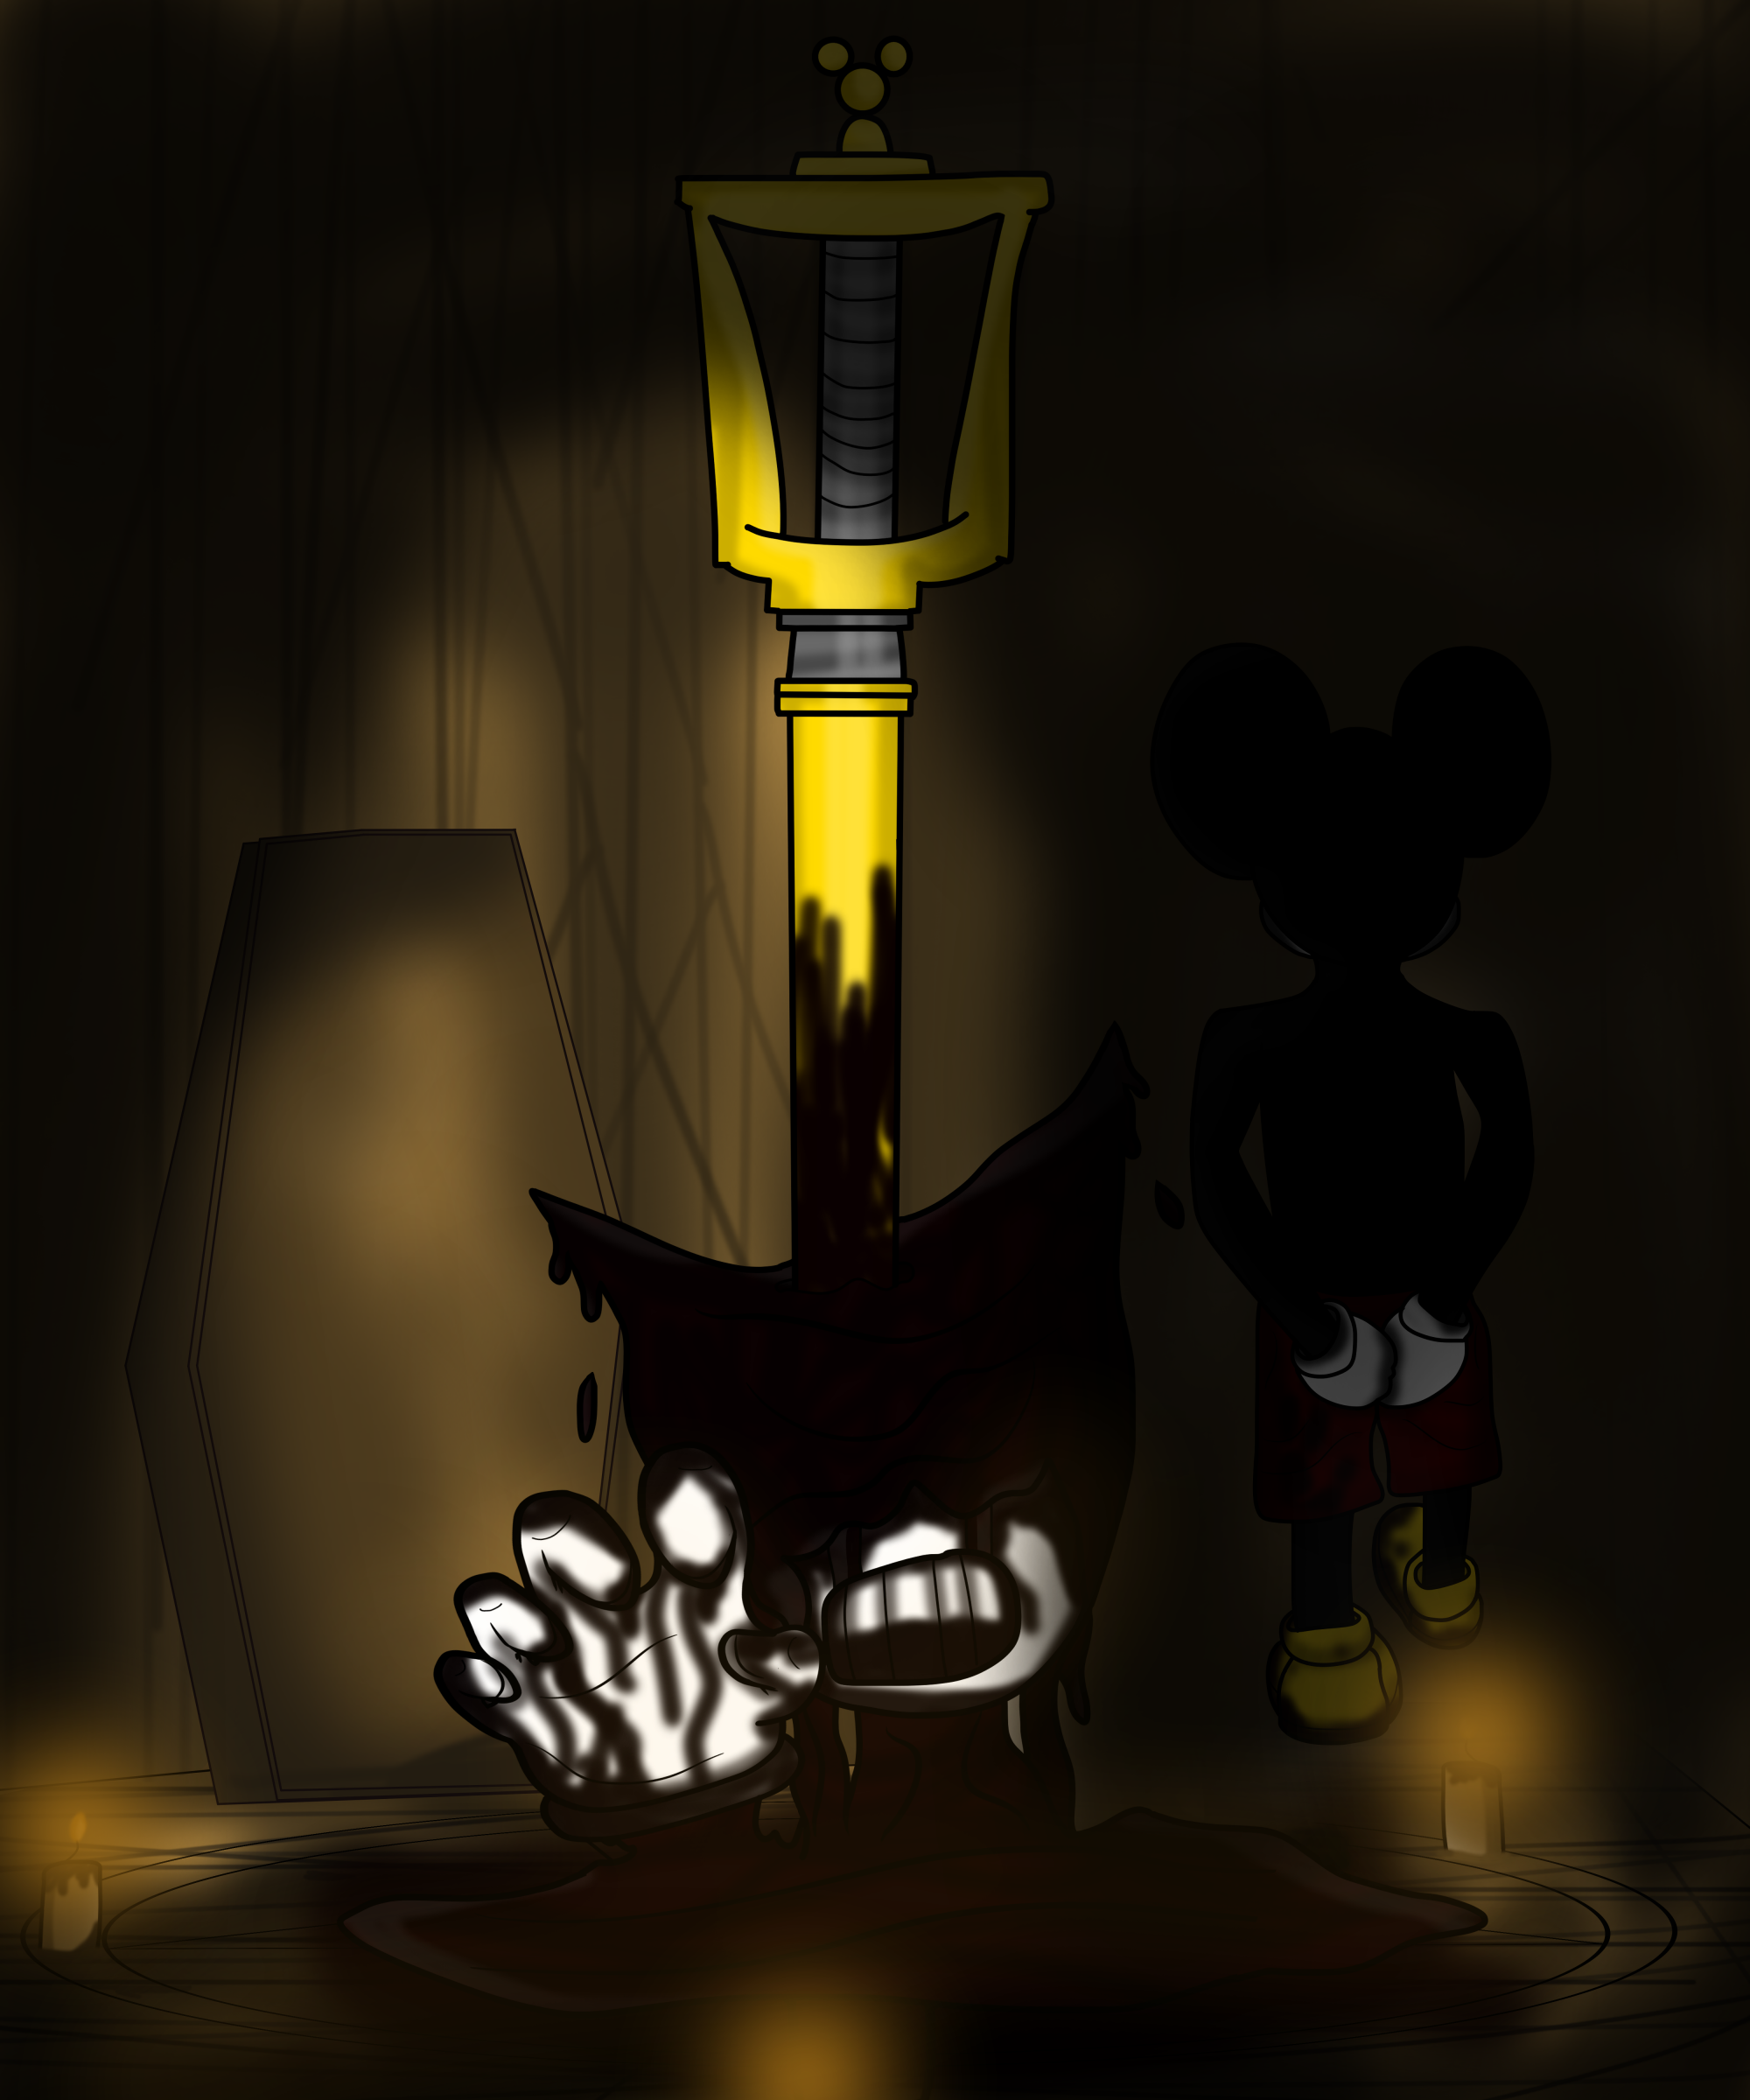 Eliminating The Competition V2 (Bendy And The Ink Machine)